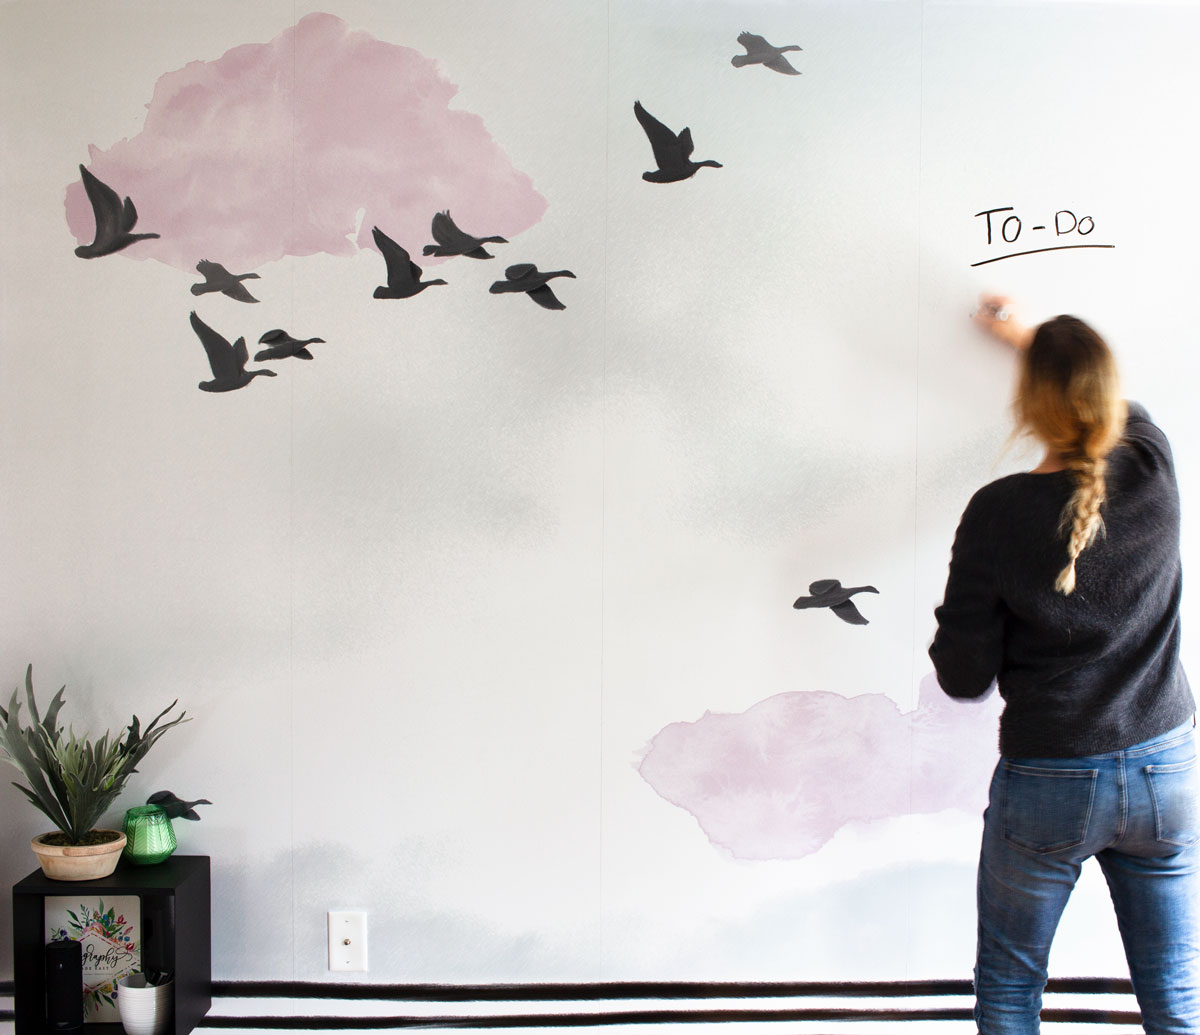 Turn A Wall Into A Whiteboard The Diy Whiteboard That S Also A Wall Mural Bloom In The Black